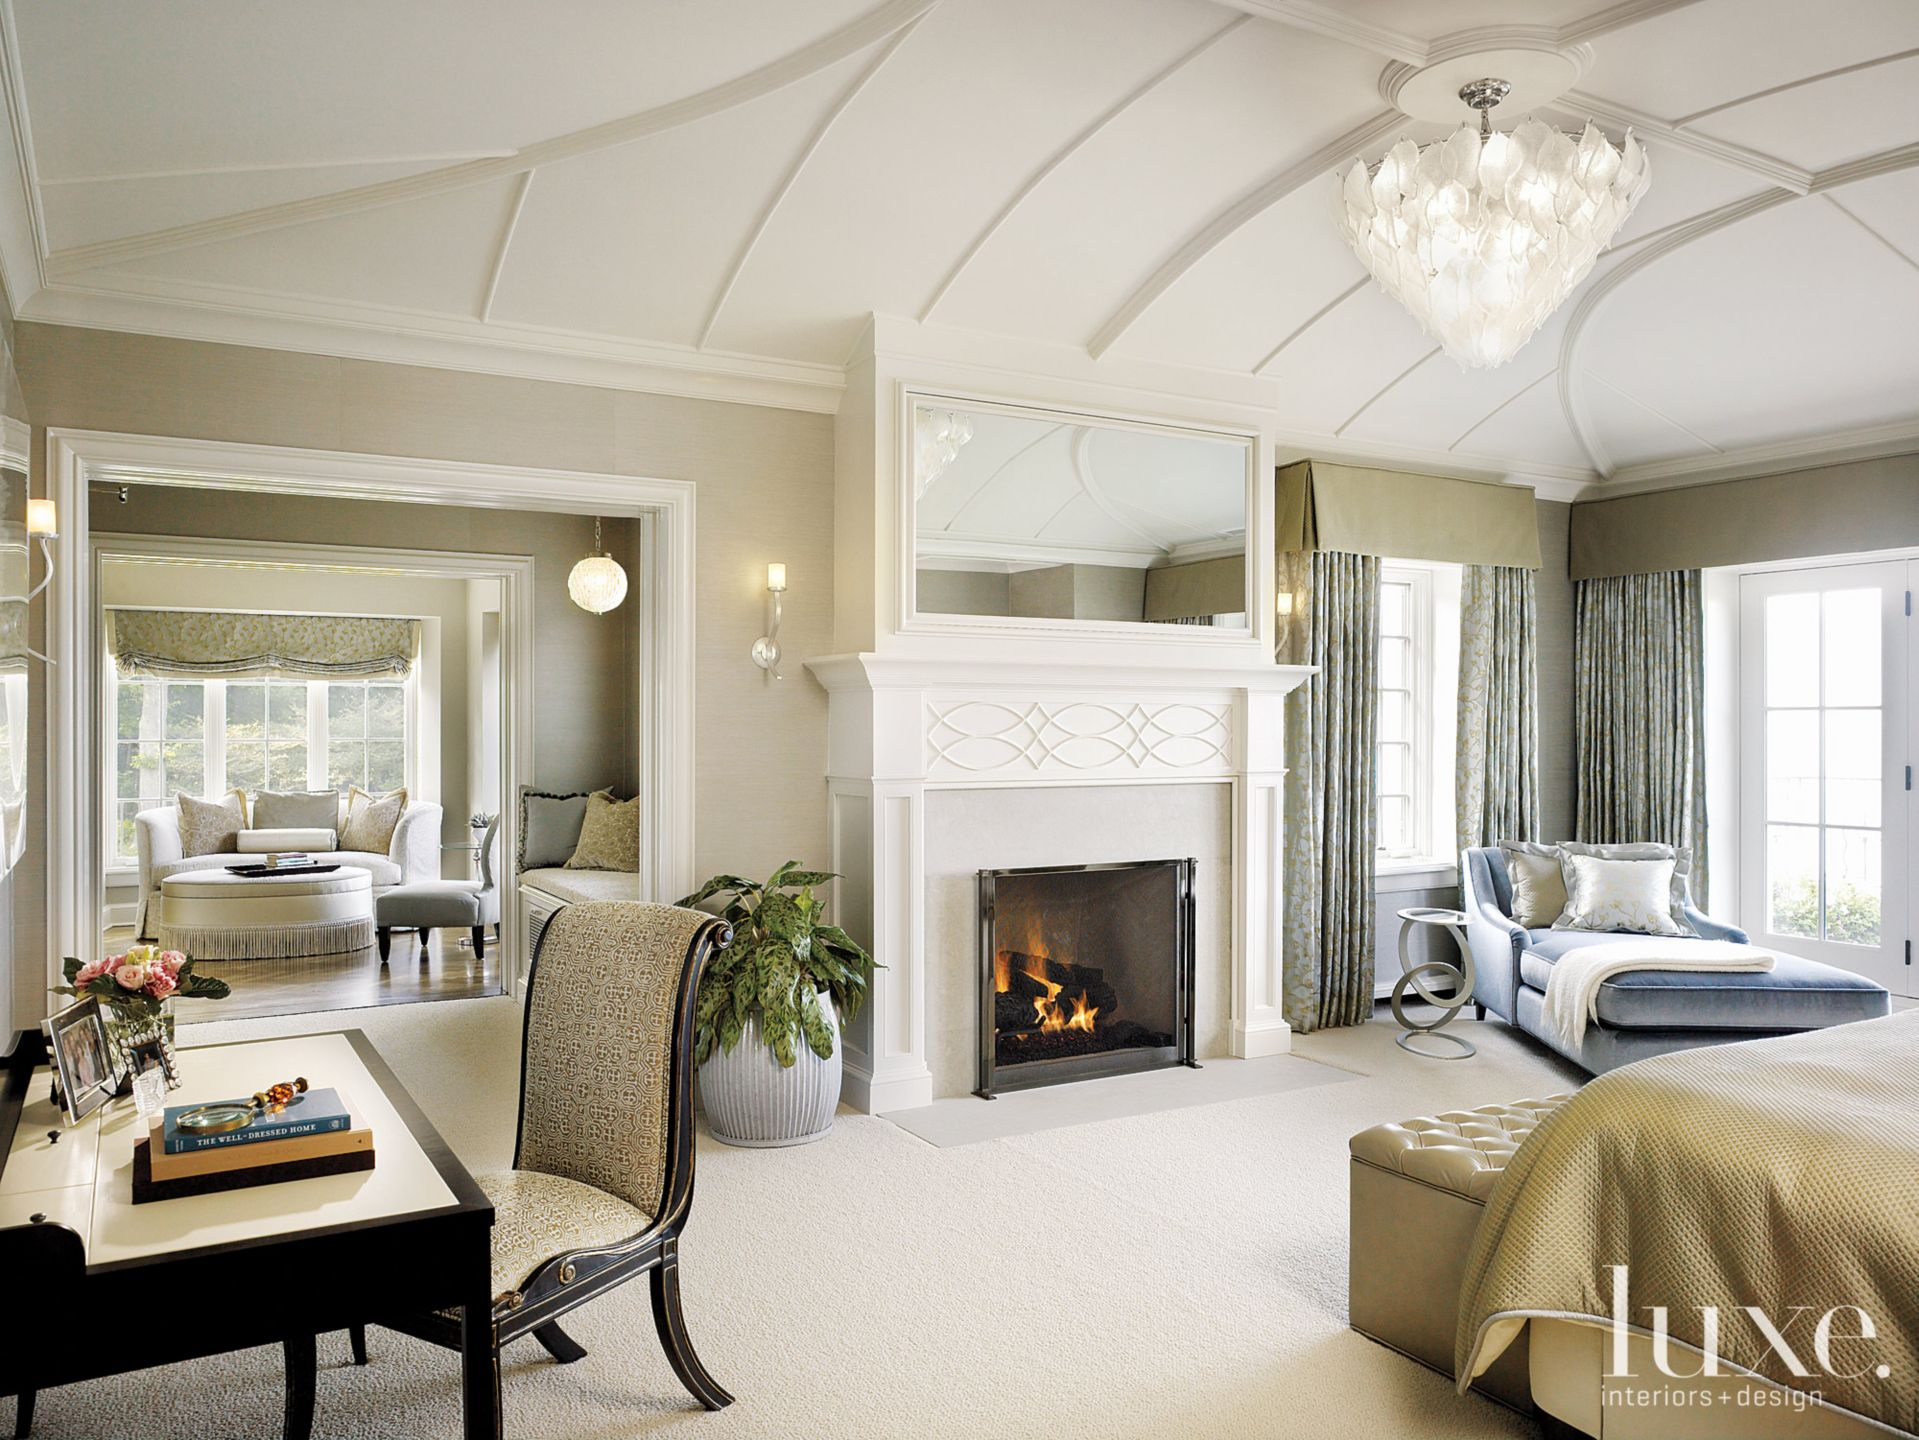 Contemporary Cream Bedroom with Vaulted Ceiling